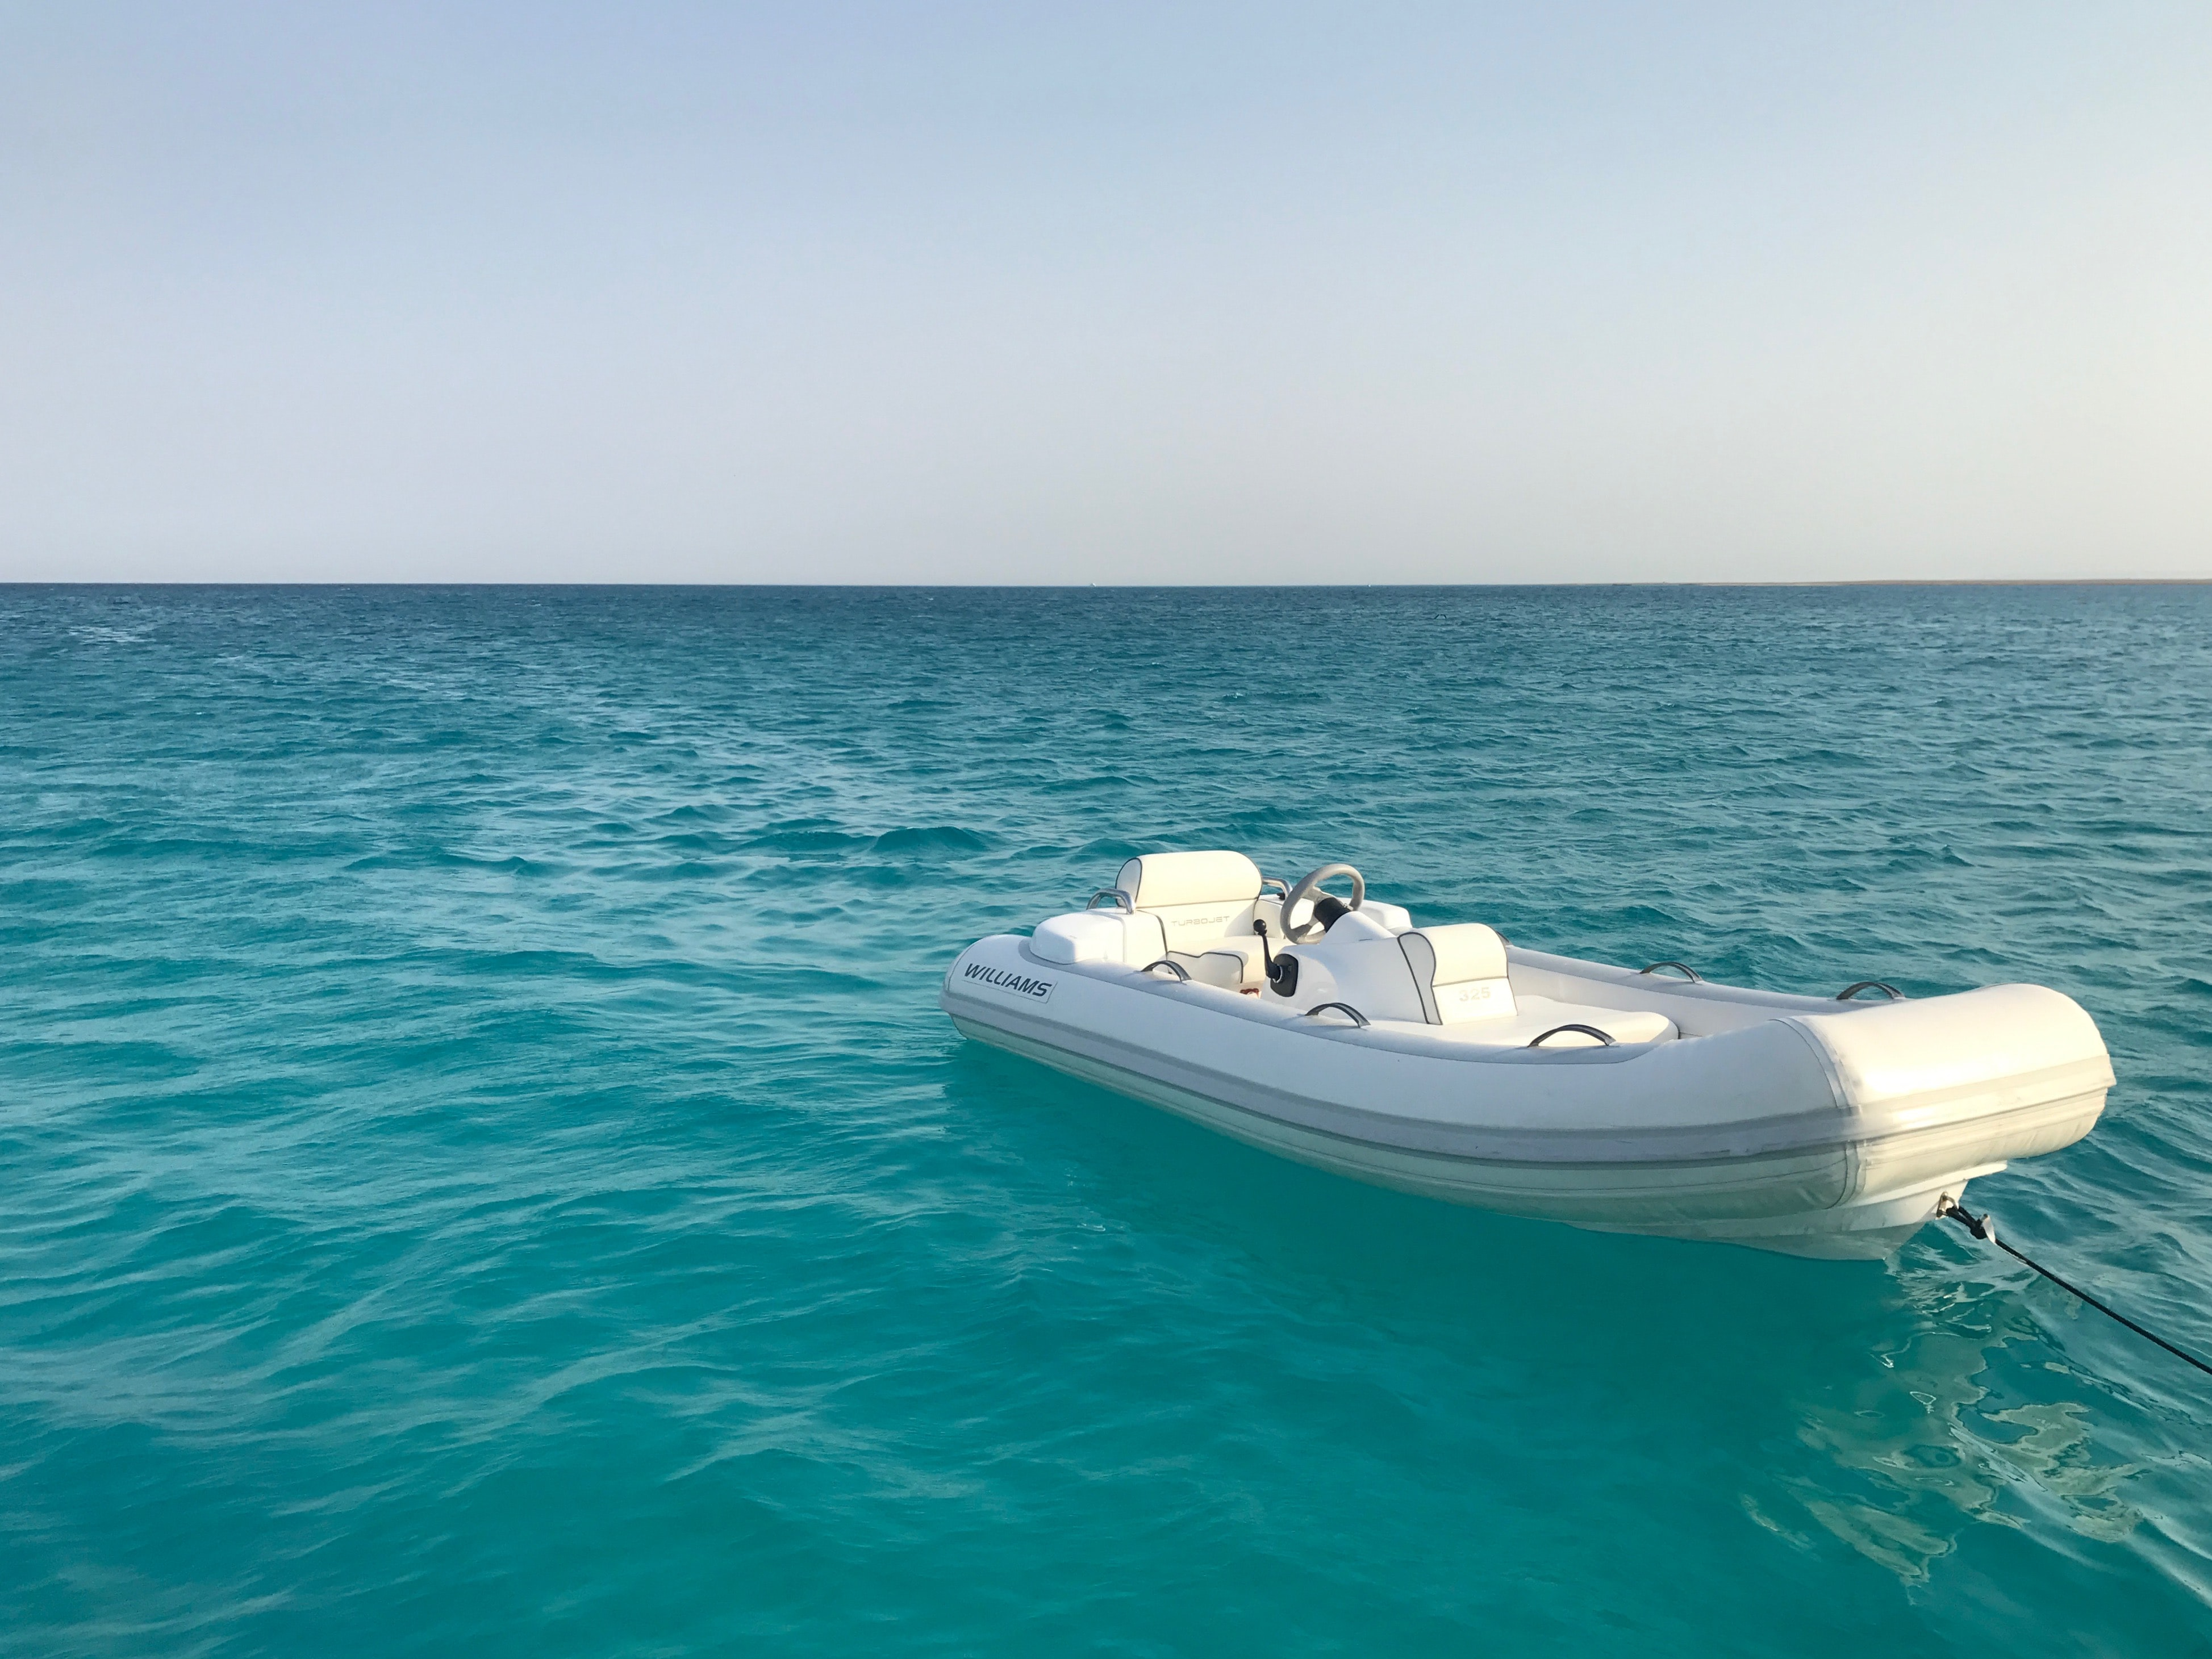 white boat floating on body of water